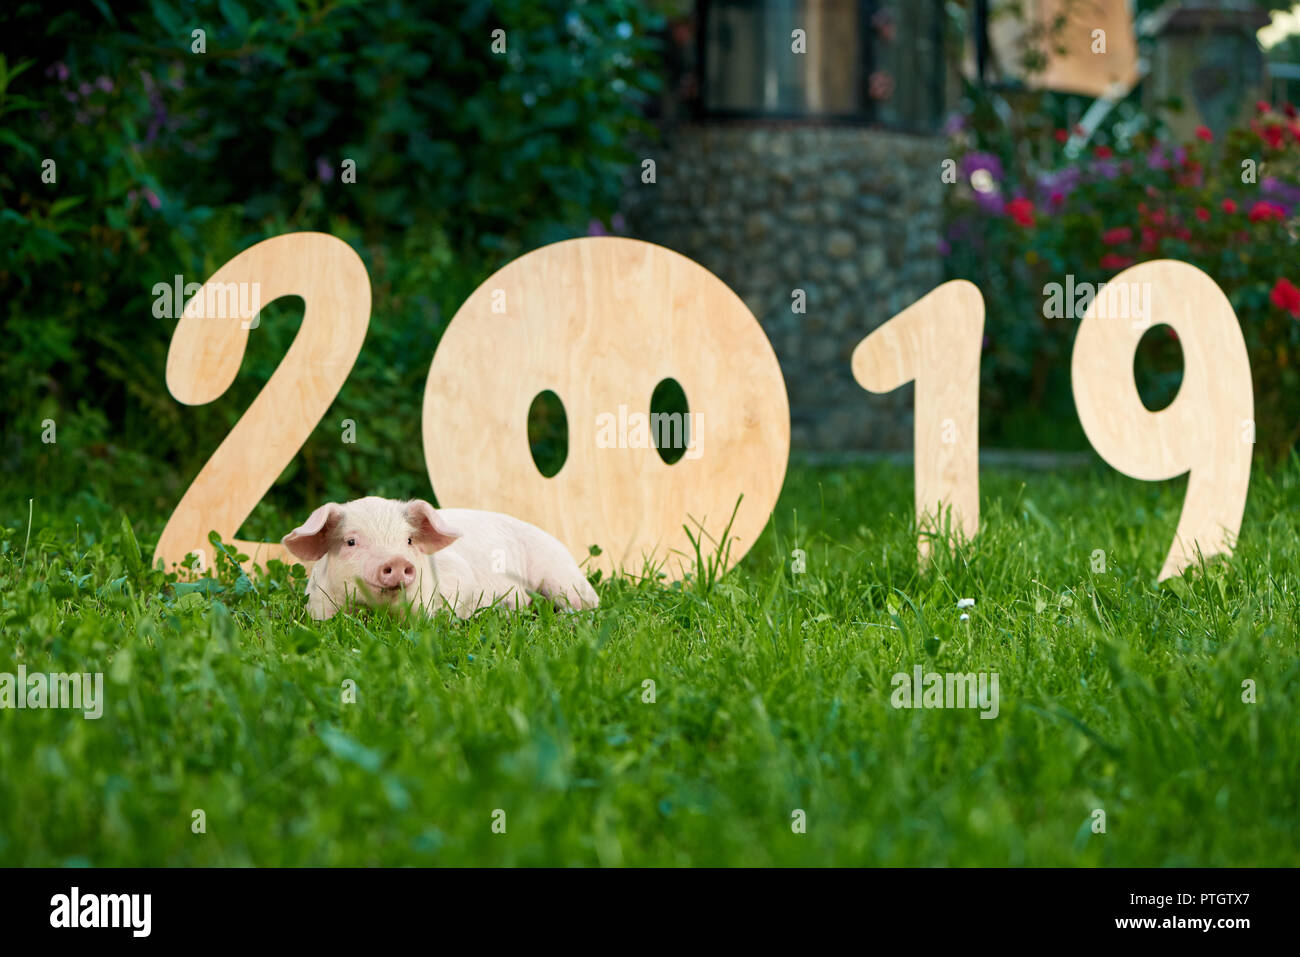 Decorative wooden numerals of new 2019 year  Cute piggy lying on